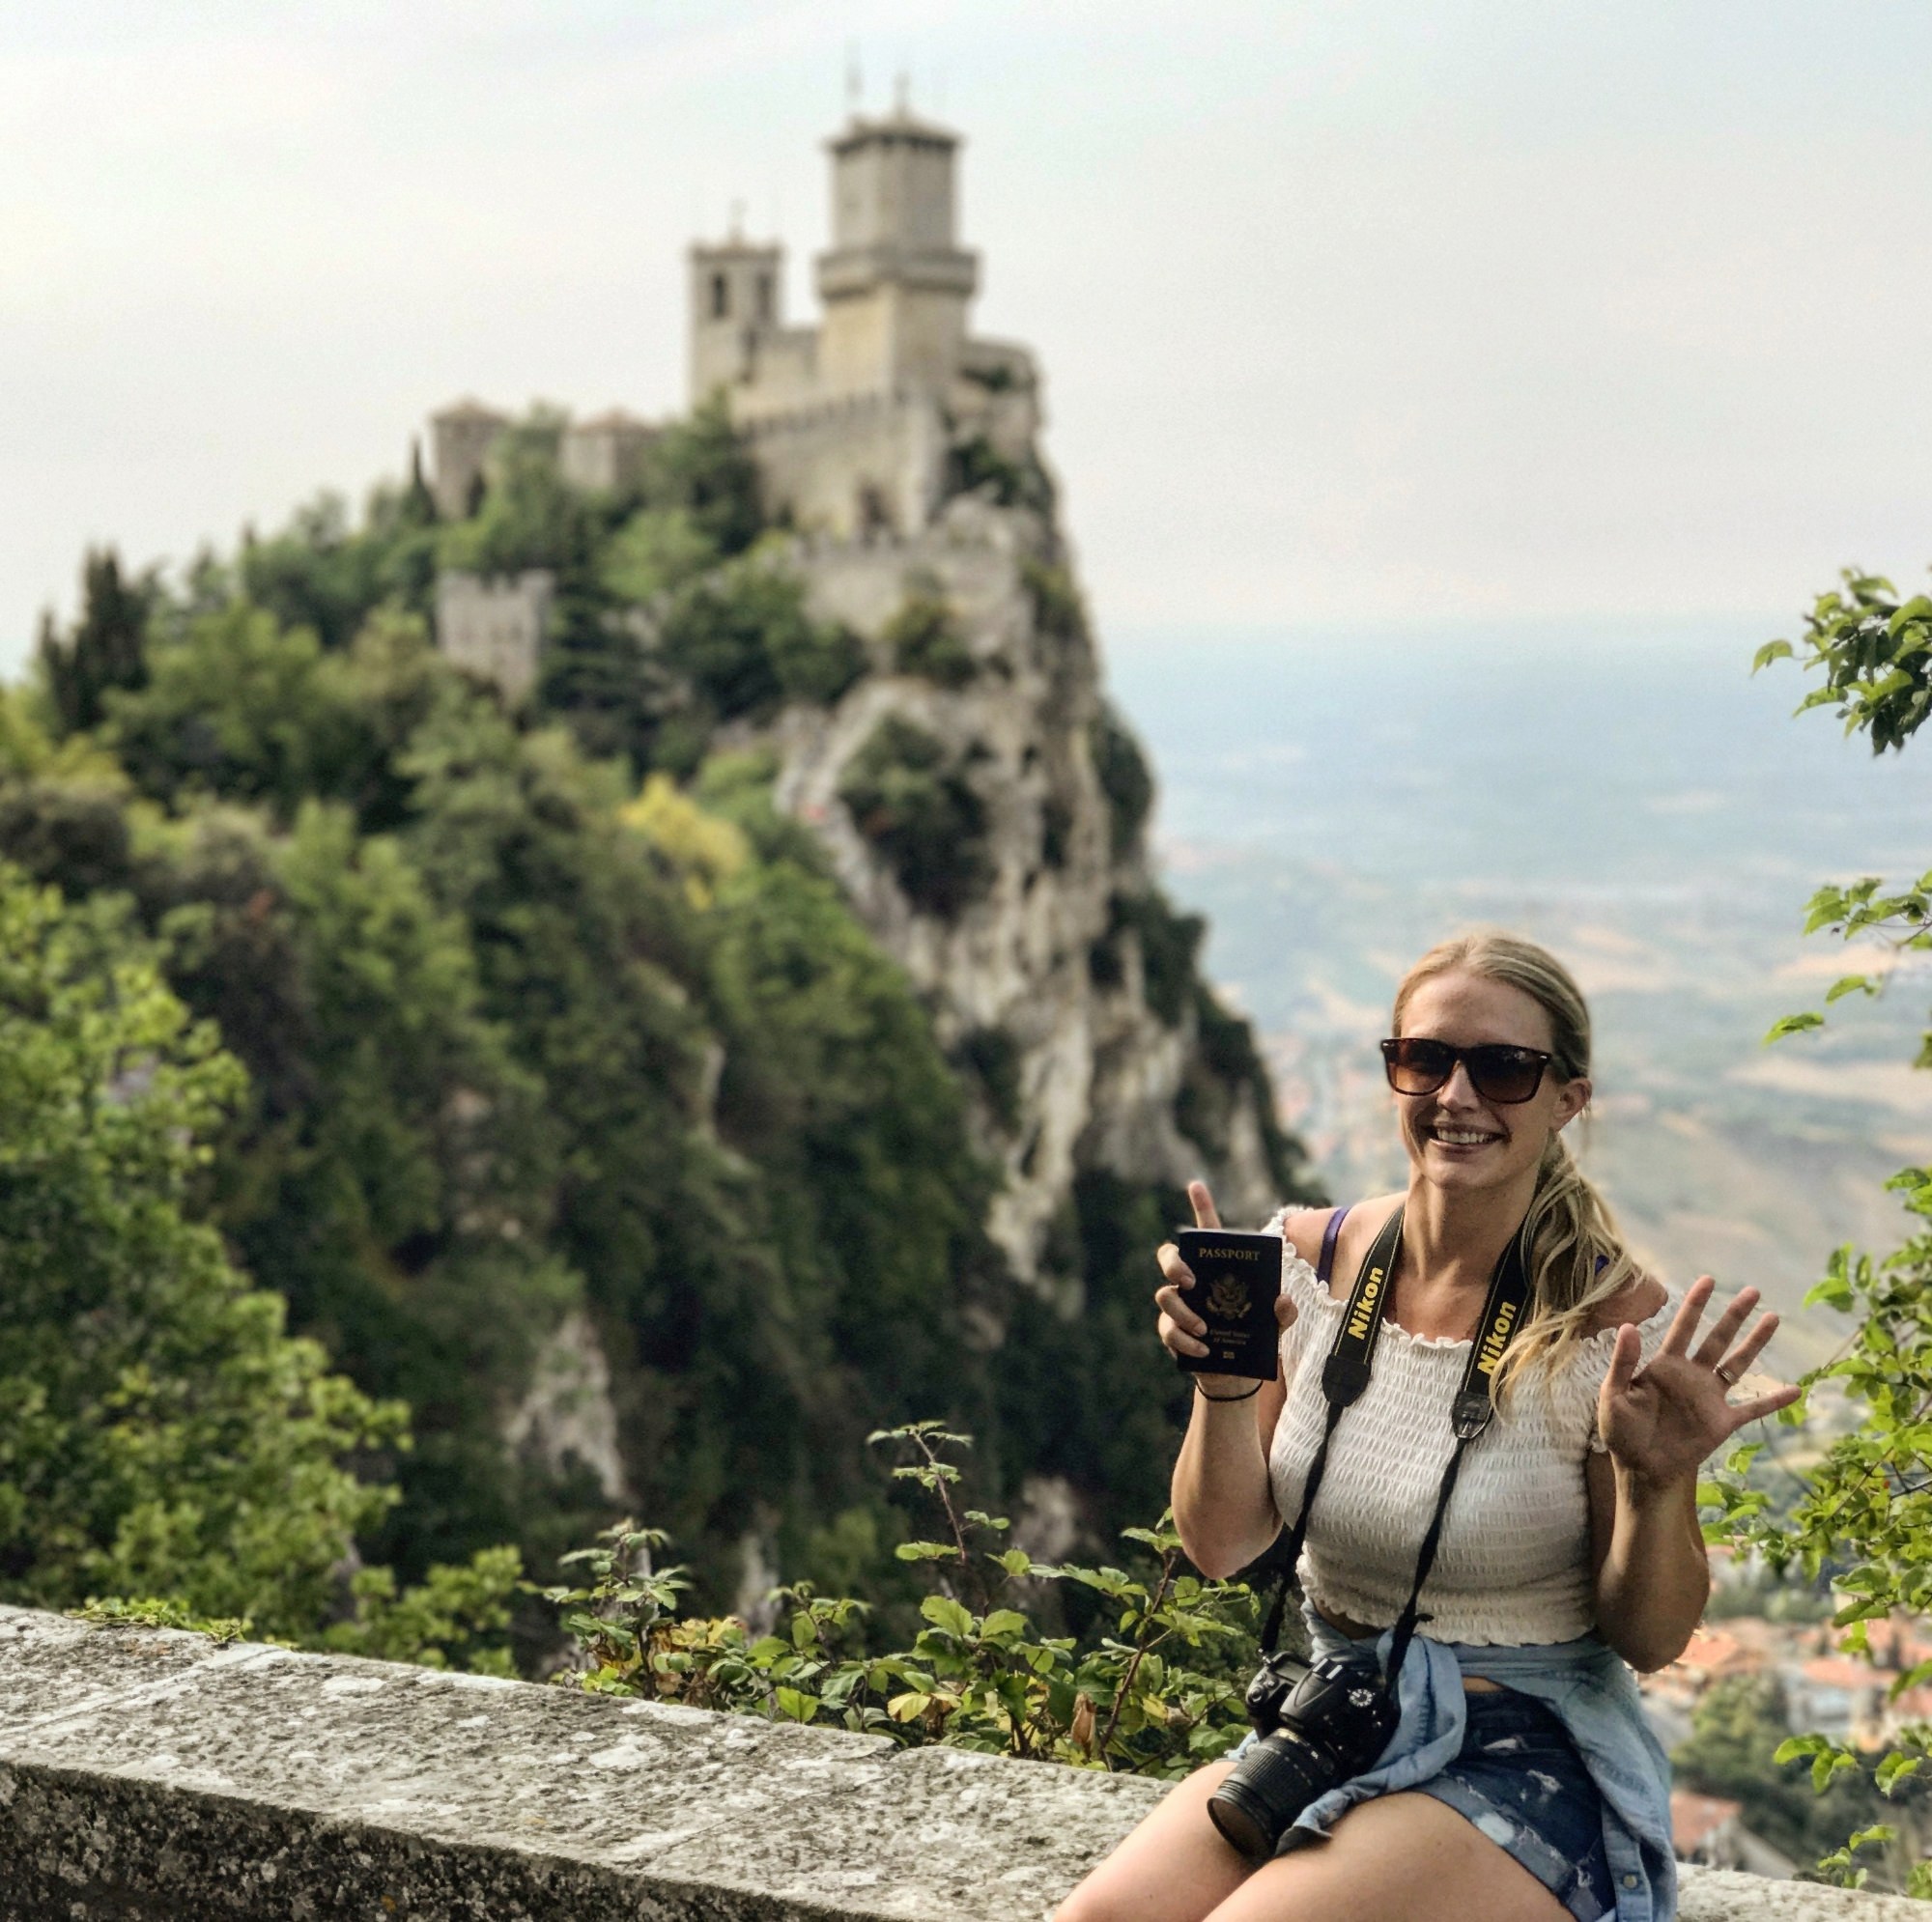 Chelsea getting her 15th passport stamp in San Marino in July 2017.